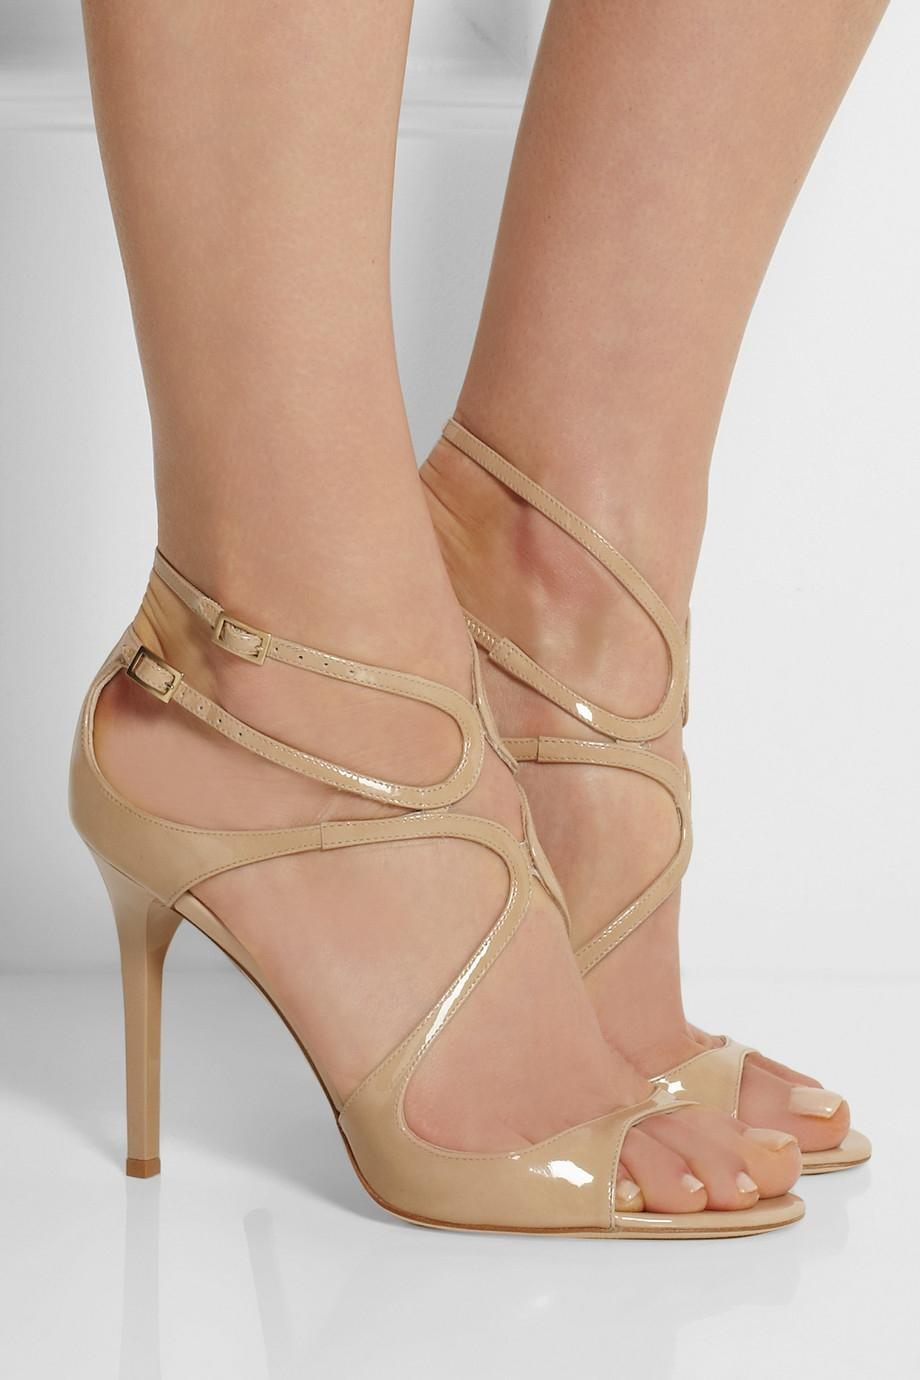 cheap sale fashion Style Jimmy Choo Lang sandals pick a best for sale IsUsWAeyq